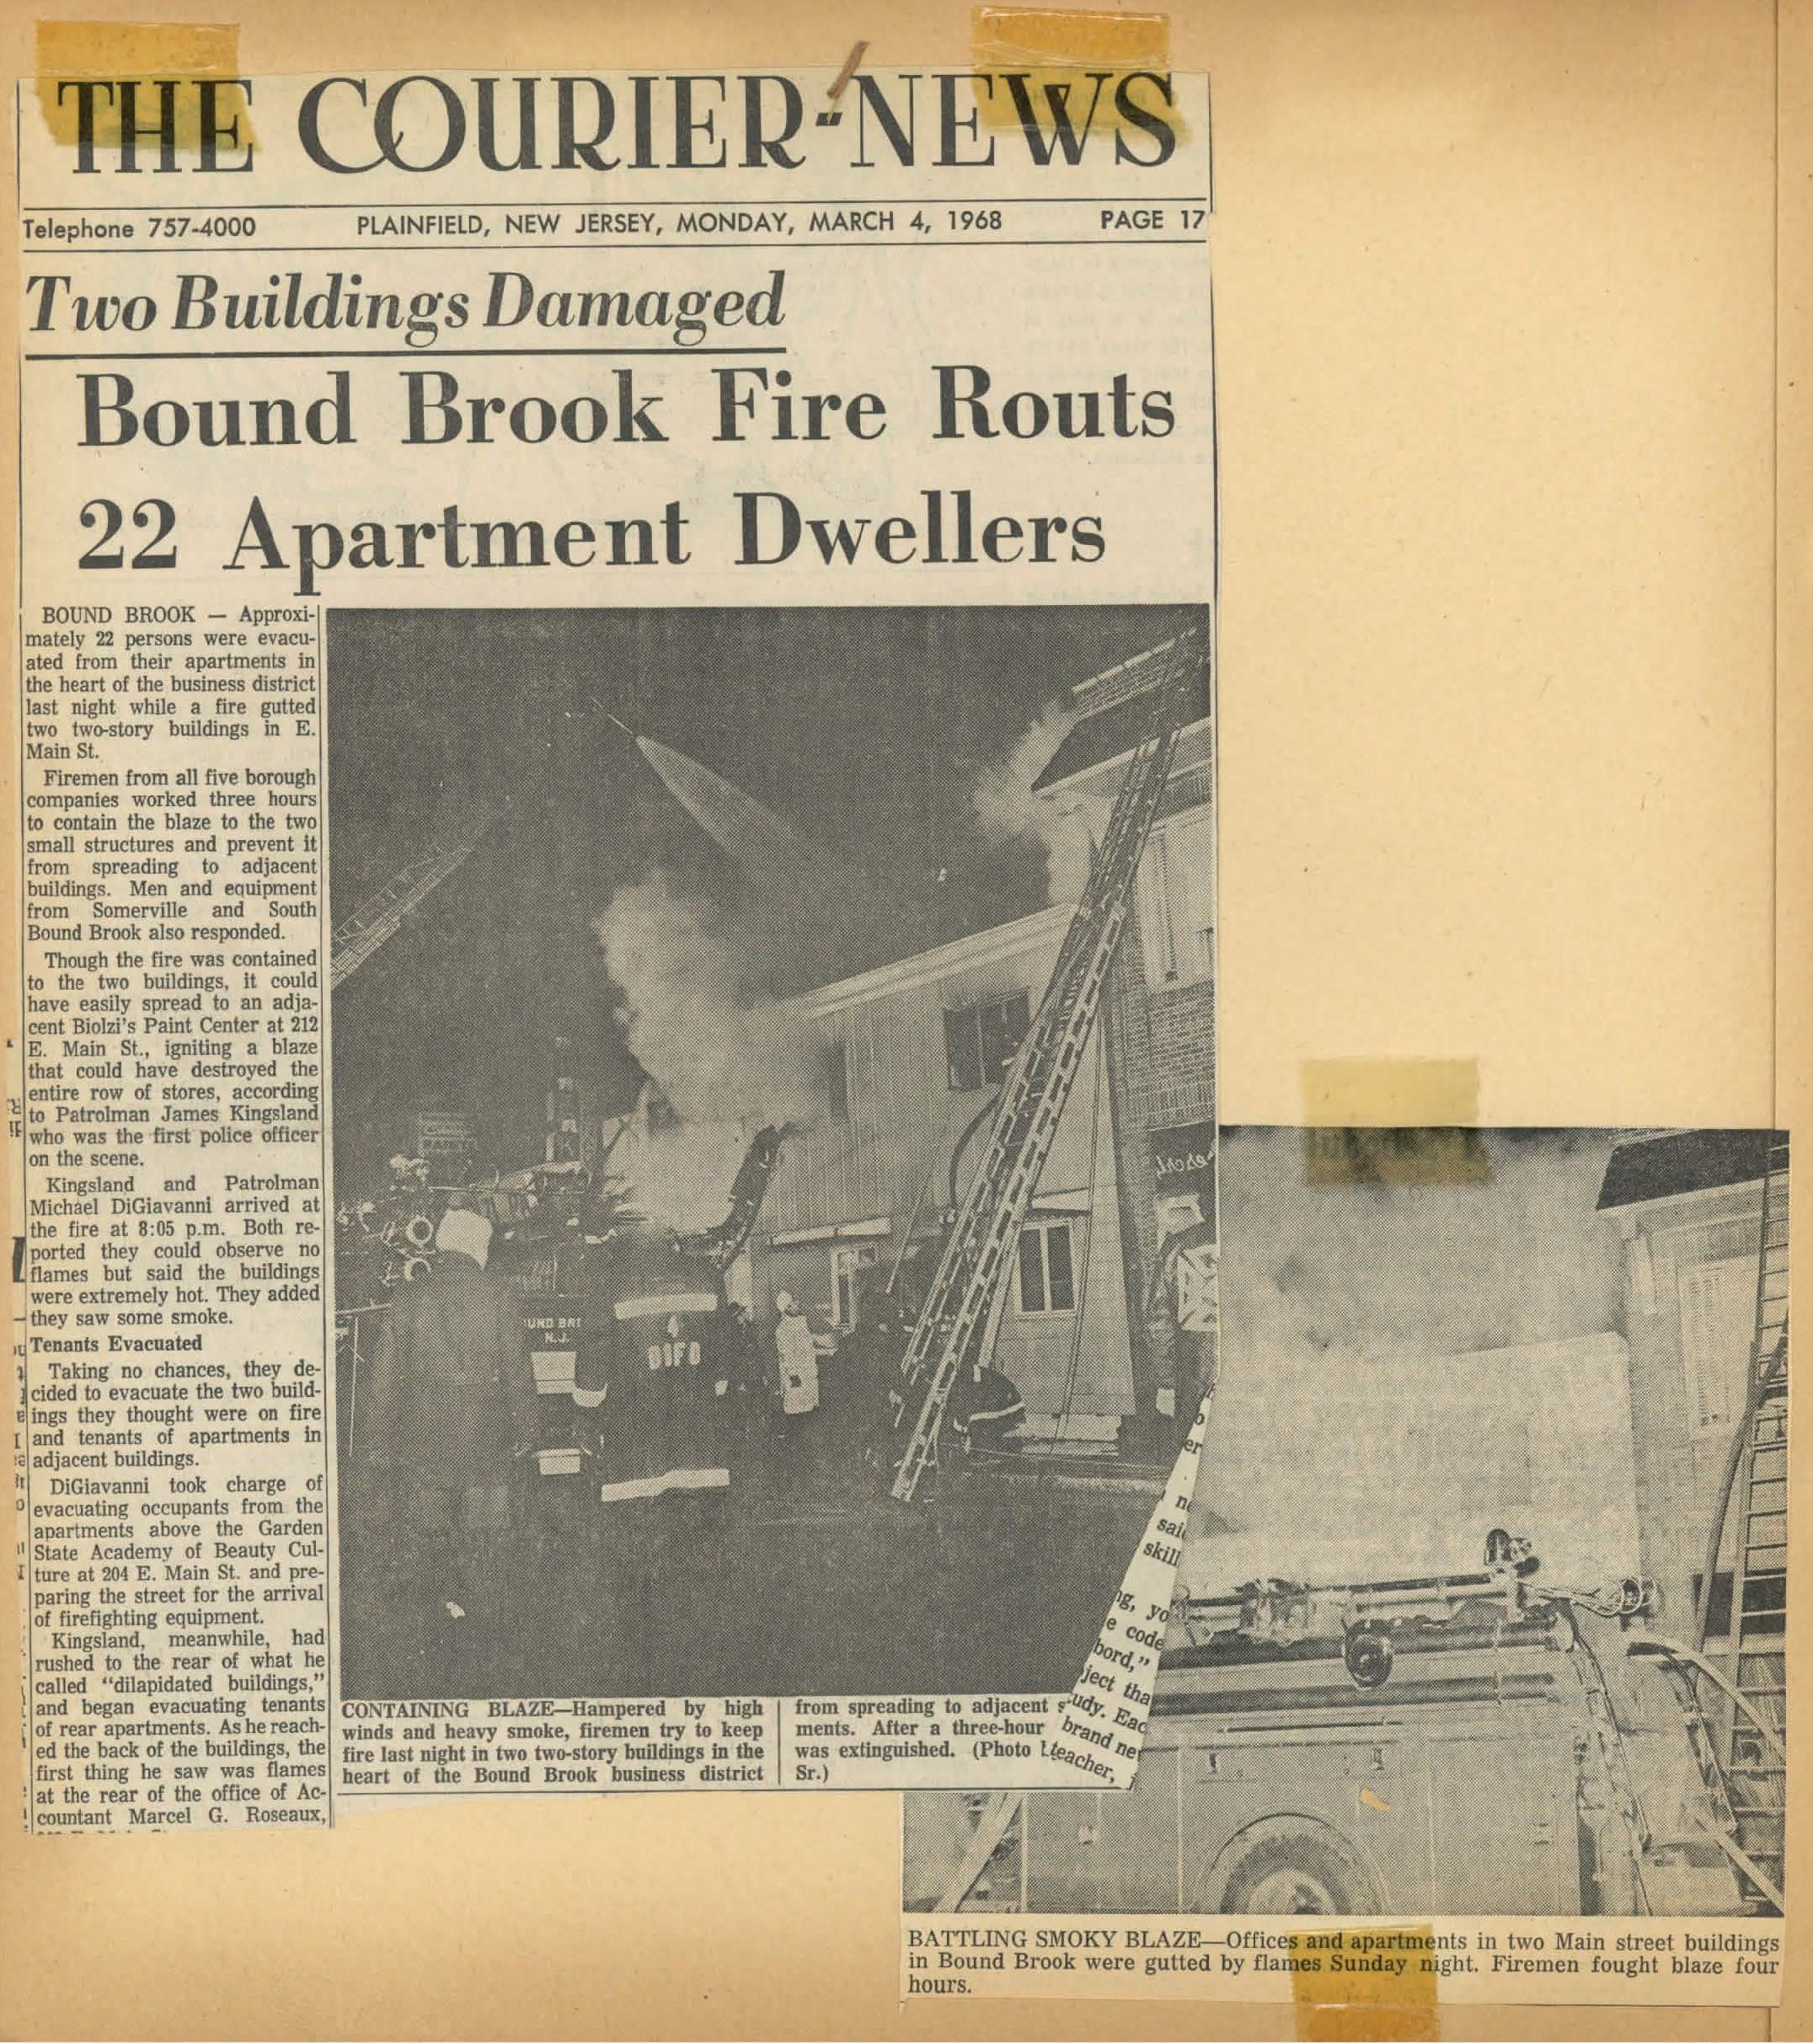 1968 Bound Brook fire.article 2_Page_1_Image_0001.jpg